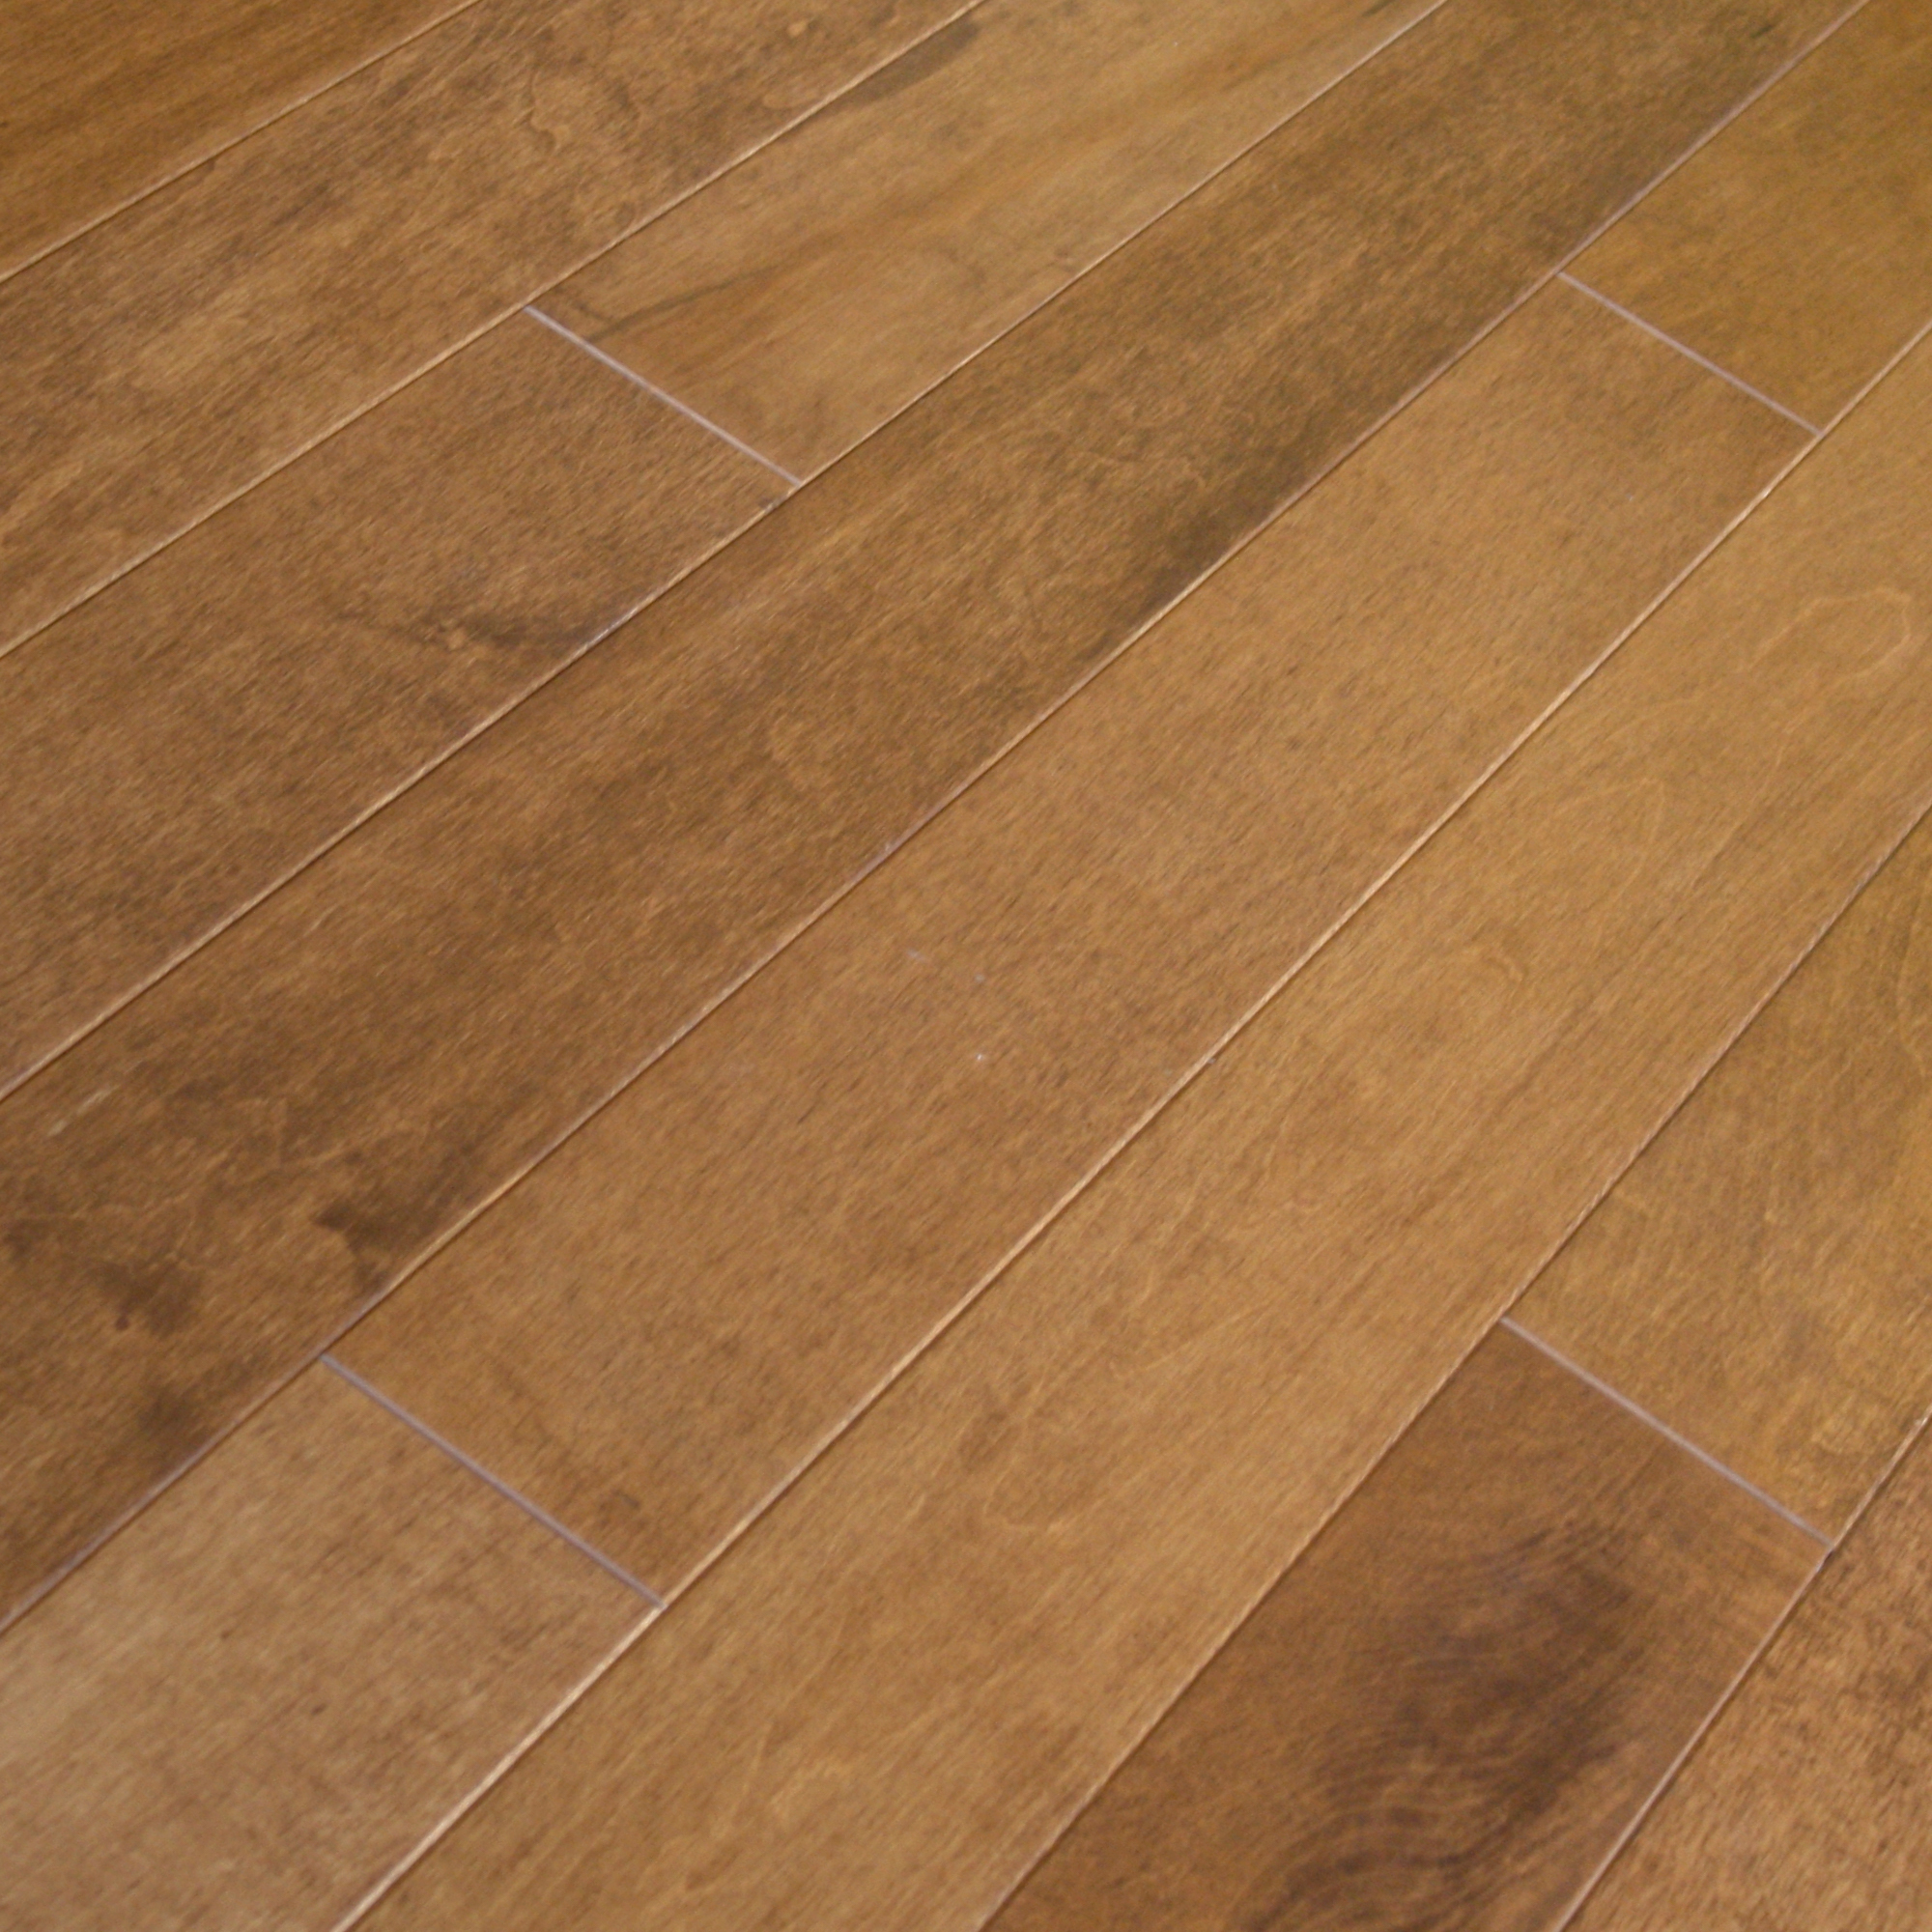 Centurion Collection Maple Chambord Flooring